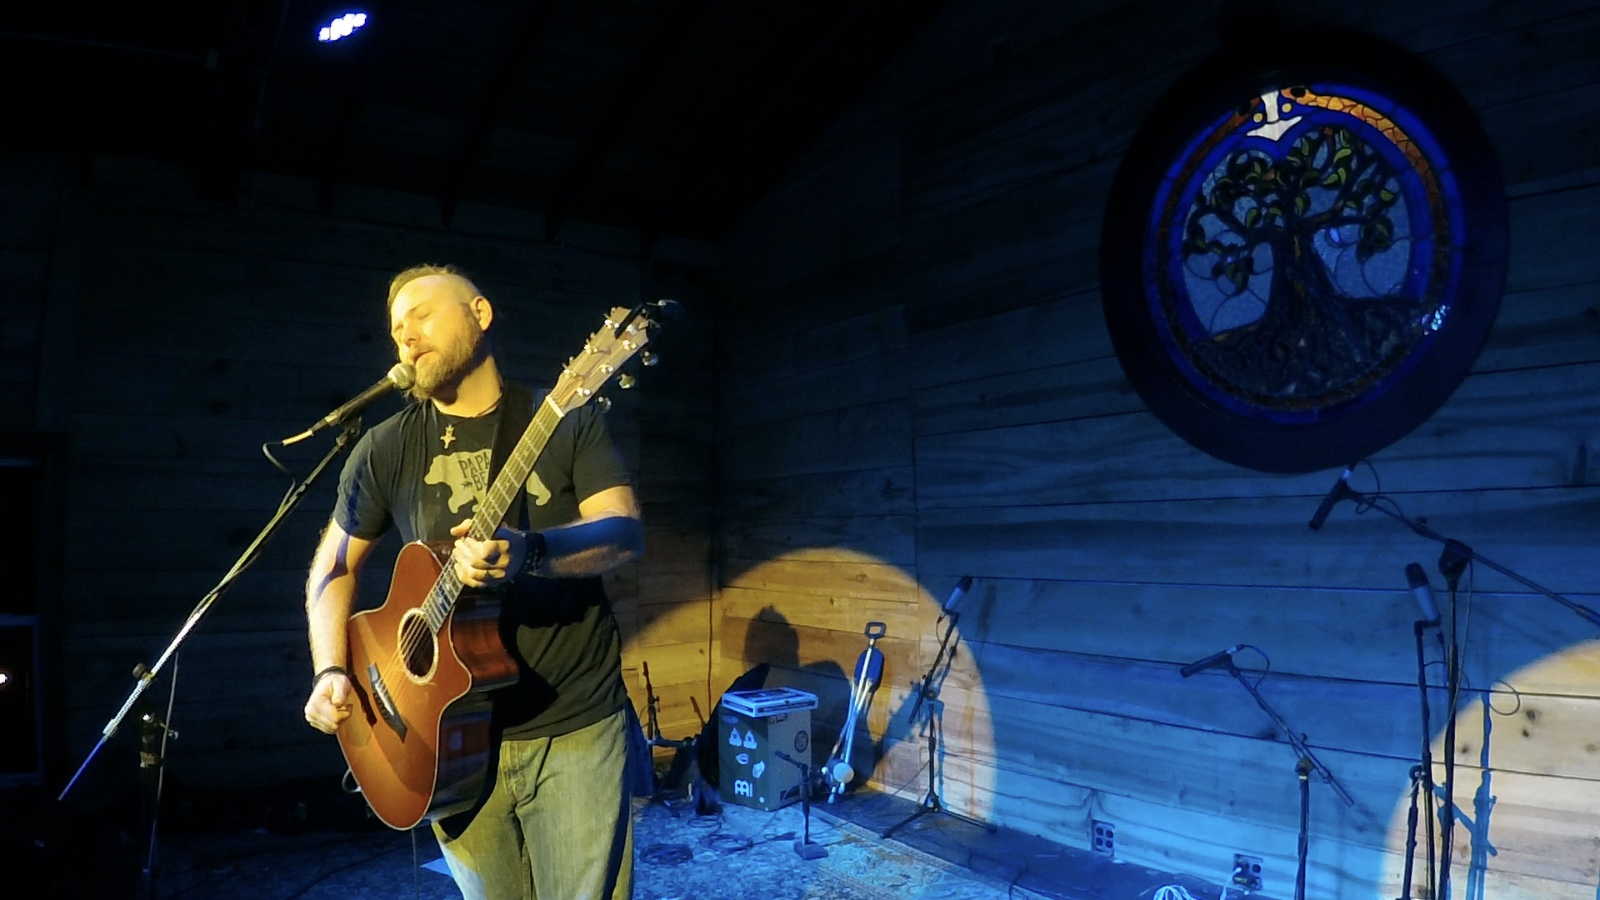 Playing at The Burl, Summer 2017